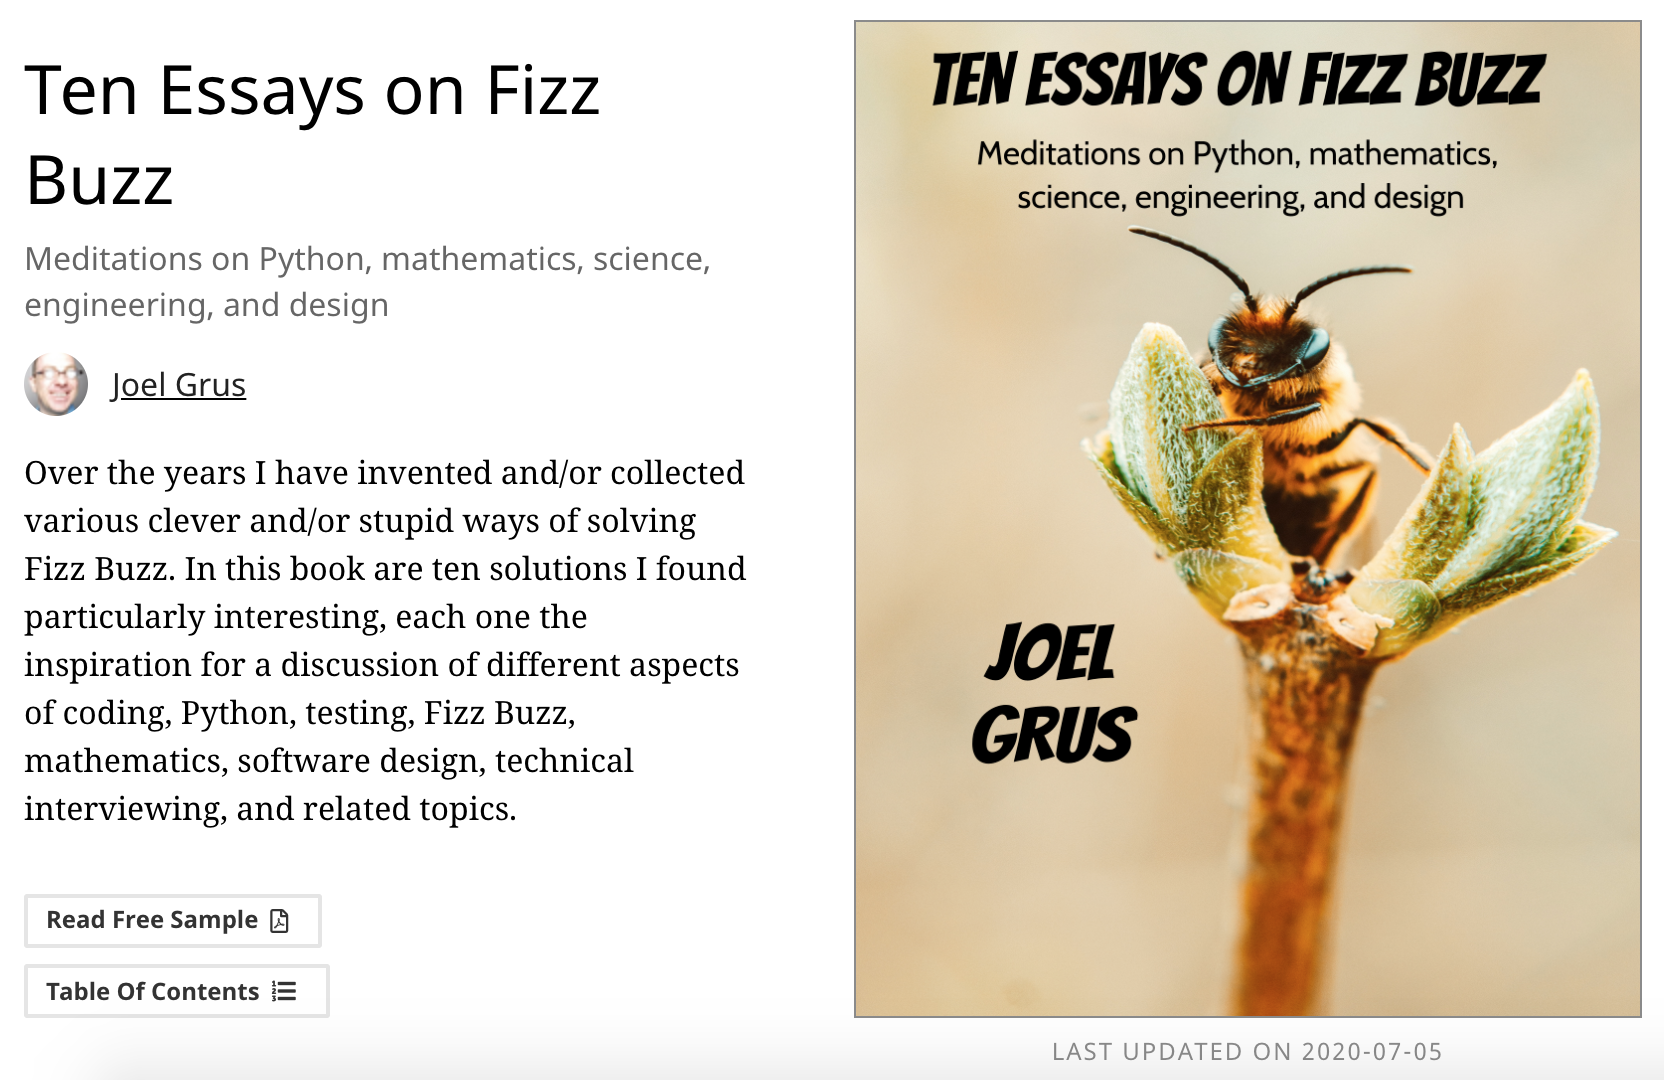 Over the years I have invented and/or collected various clever and/or stupid ways of solving Fizz Buzz. In this book are ten solutions I found particularly interesting, each one the inspiration for a discussion of different aspects of coding, Python, testing, Fizz Buzz, mathematics, software design, technical interviewing, and related topics.